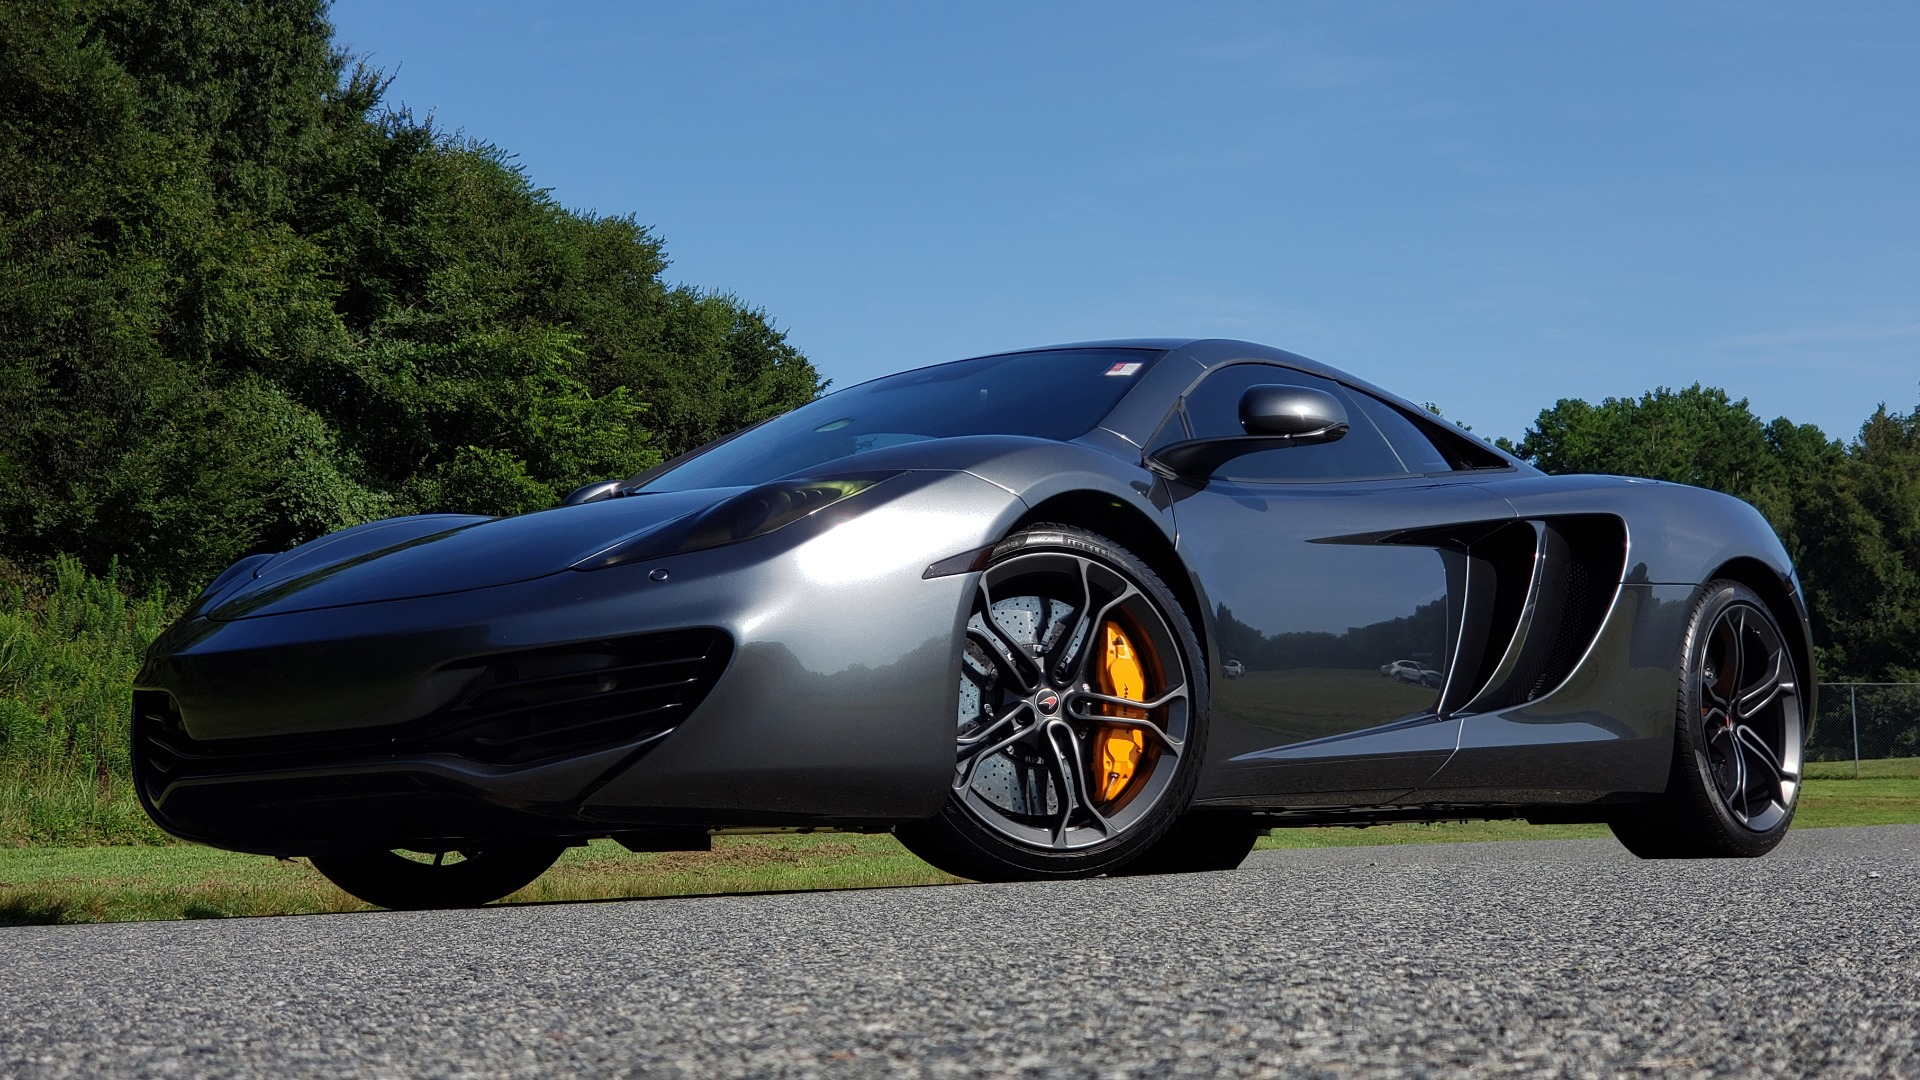 Used 2012 McLaren MP4-12C COUPE / 3.8 L V8 592HP / AUTO / NAV / CCB / LOW MILES for sale $97,999 at Formula Imports in Charlotte NC 28227 6